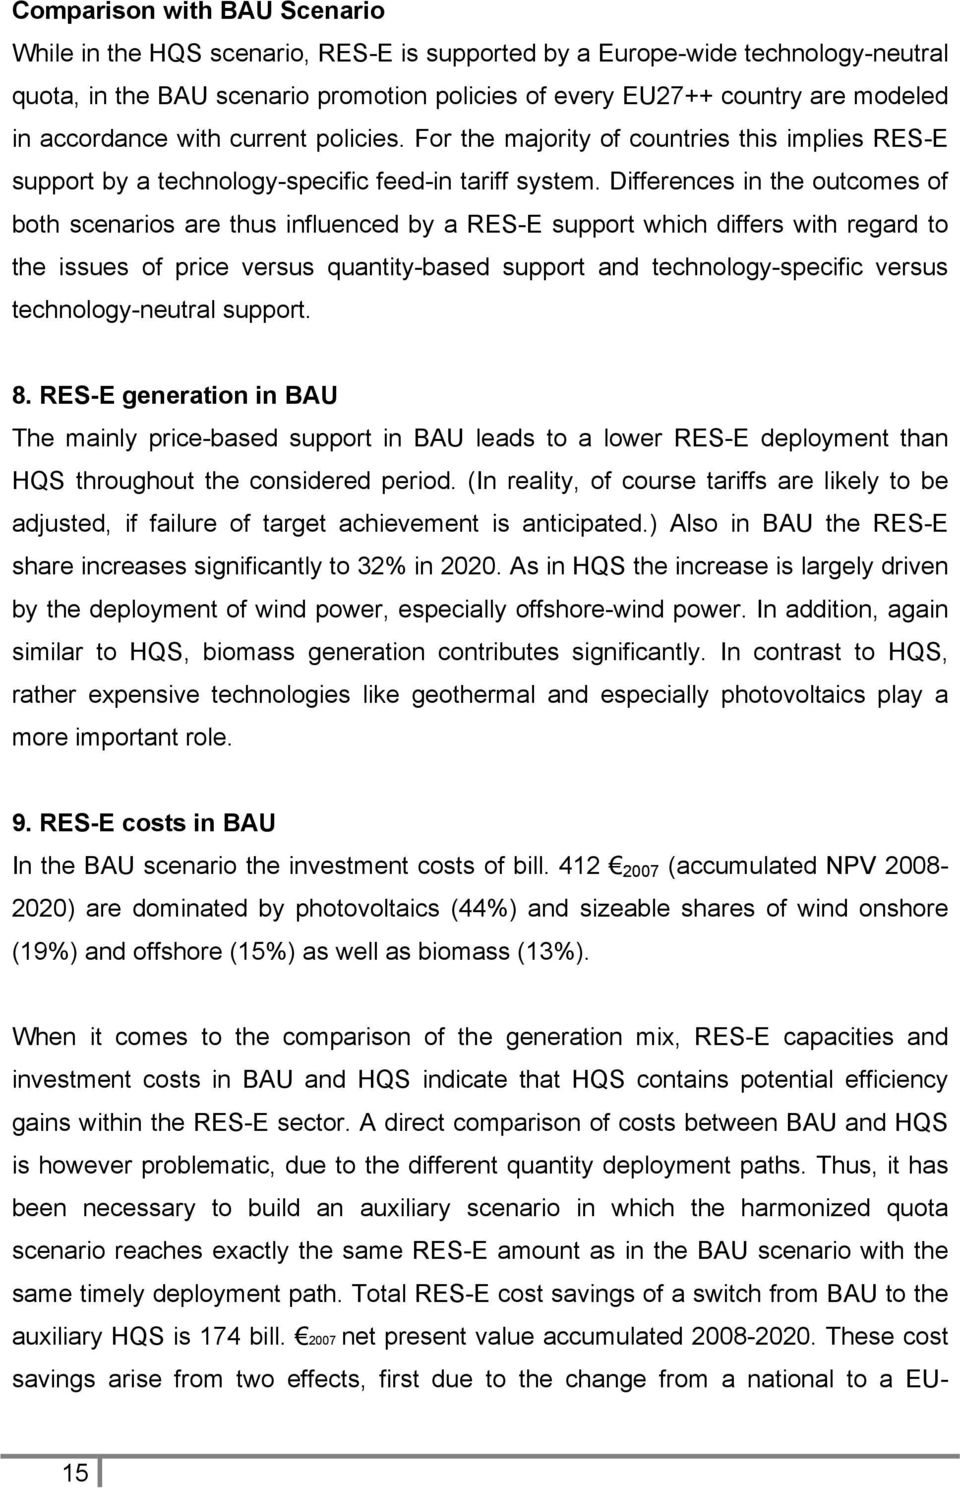 Differences in the outcomes of both scenarios are thus influenced by a RES-E support which differs with regard to the issues of price versus quantity-based support and technology-specific versus